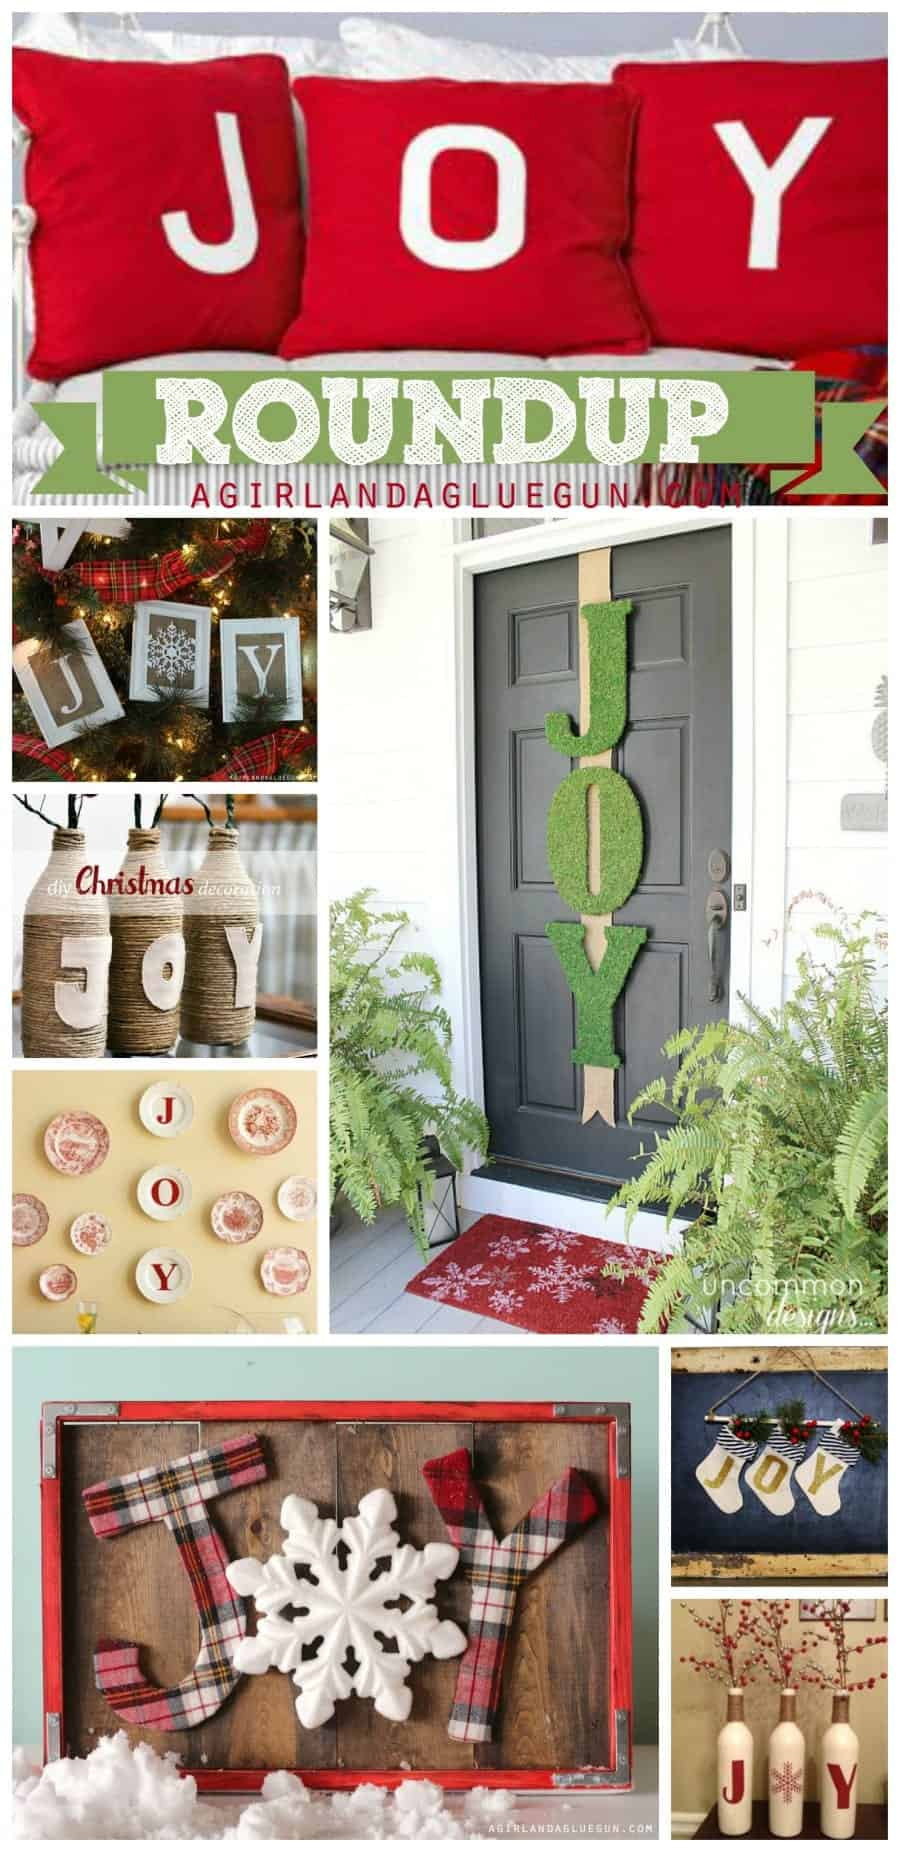 Joy roundup-fun decorations, projects and crafts